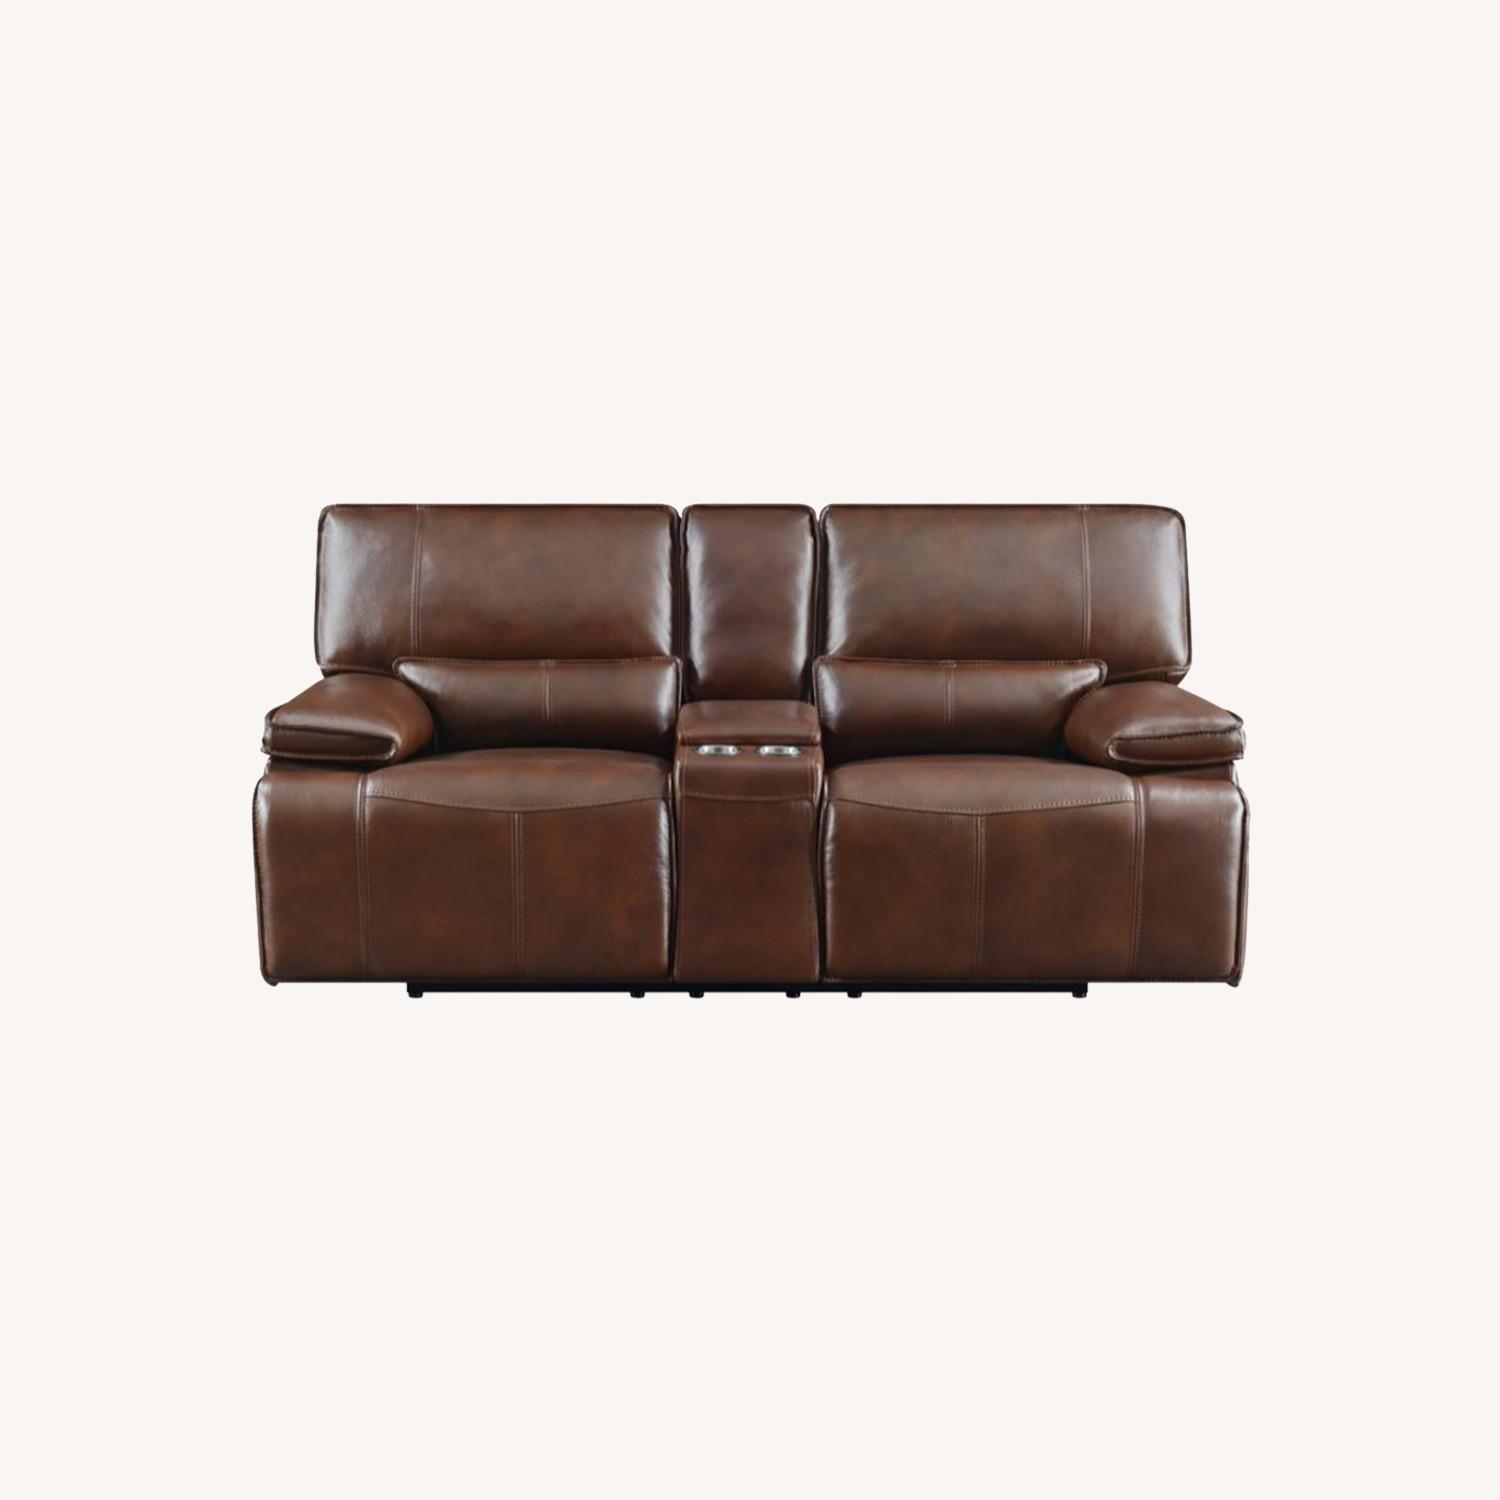 Power Loveseat In Saddle Brown W/ Console - image-10